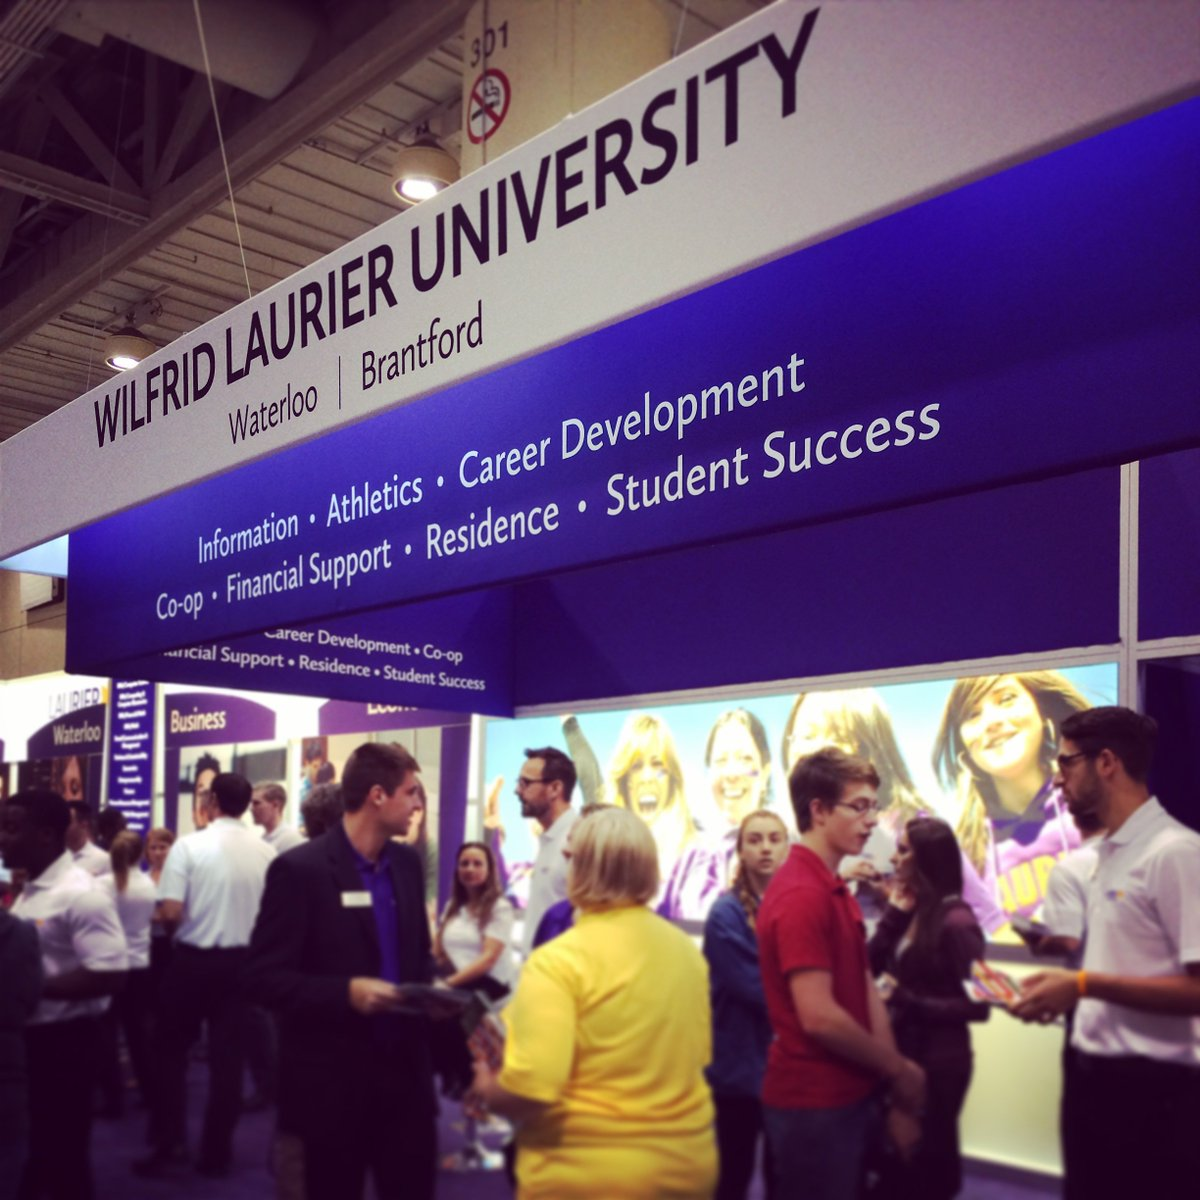 It's #OUF2017! Make sure to stop by the #Laurier booth and learn about...